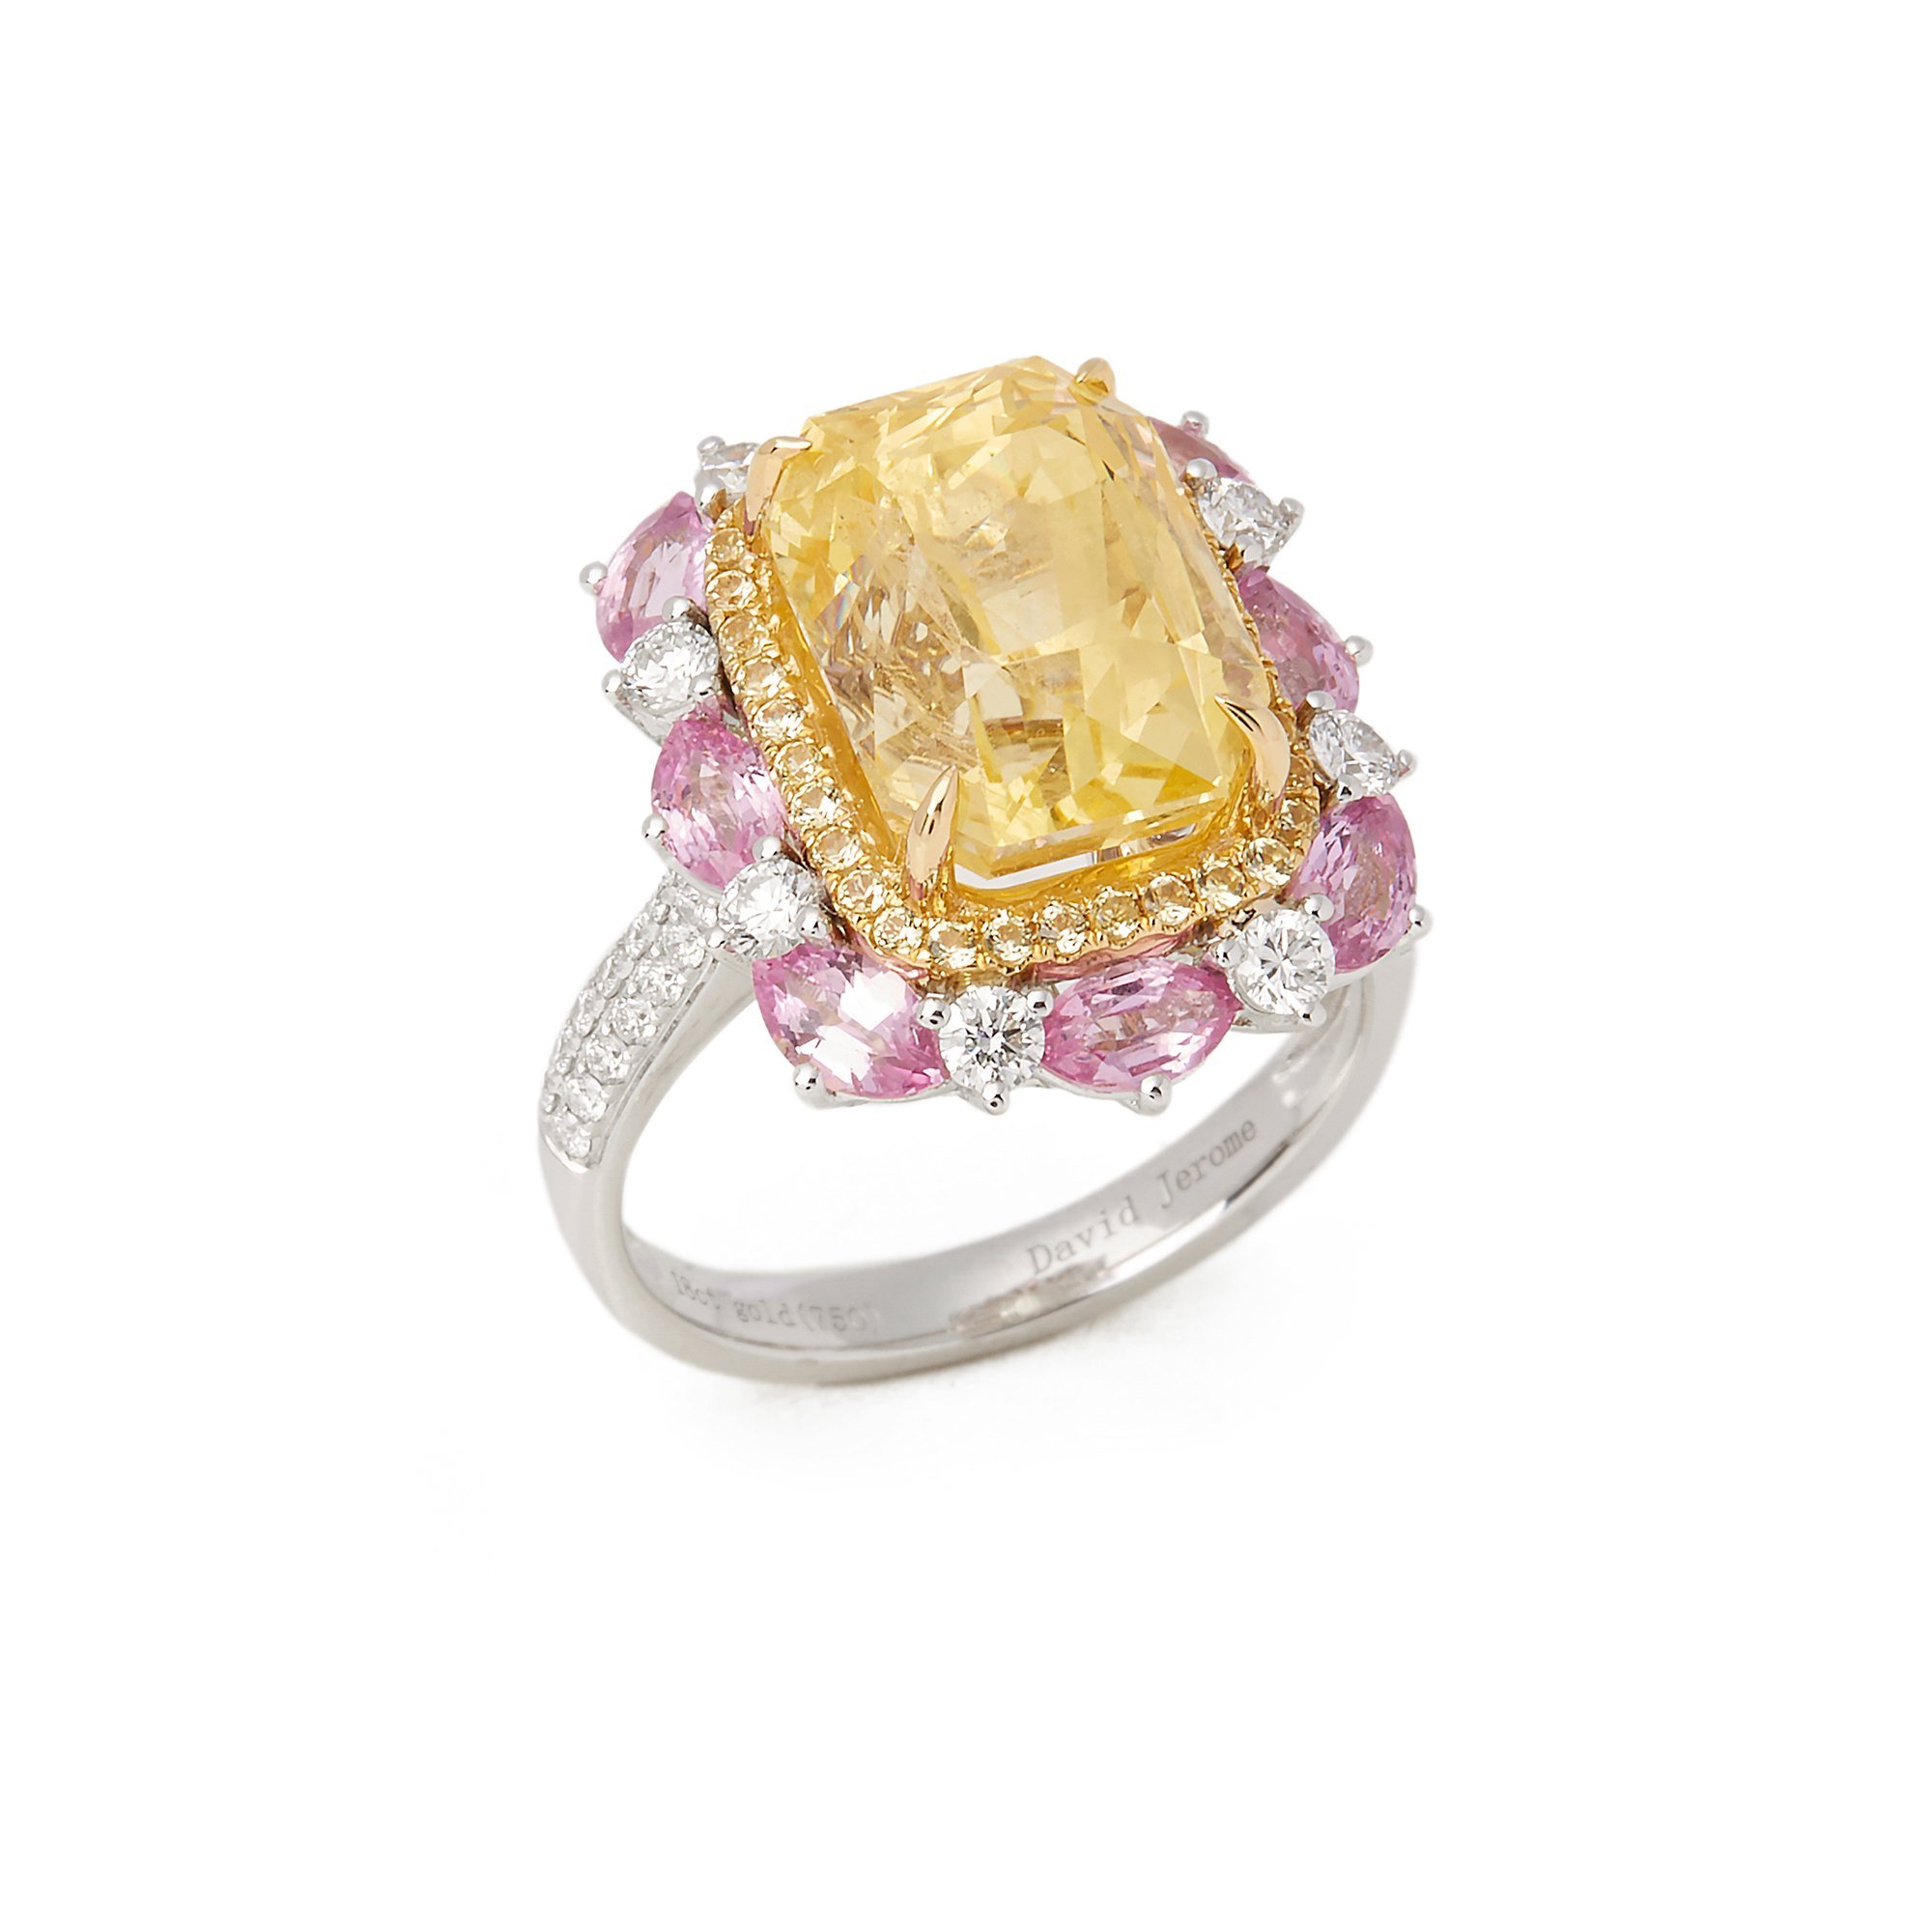 David Jerome Certified 10.38ct Untreated Cushion Cut Yellow Sapphire and Diamond Ring